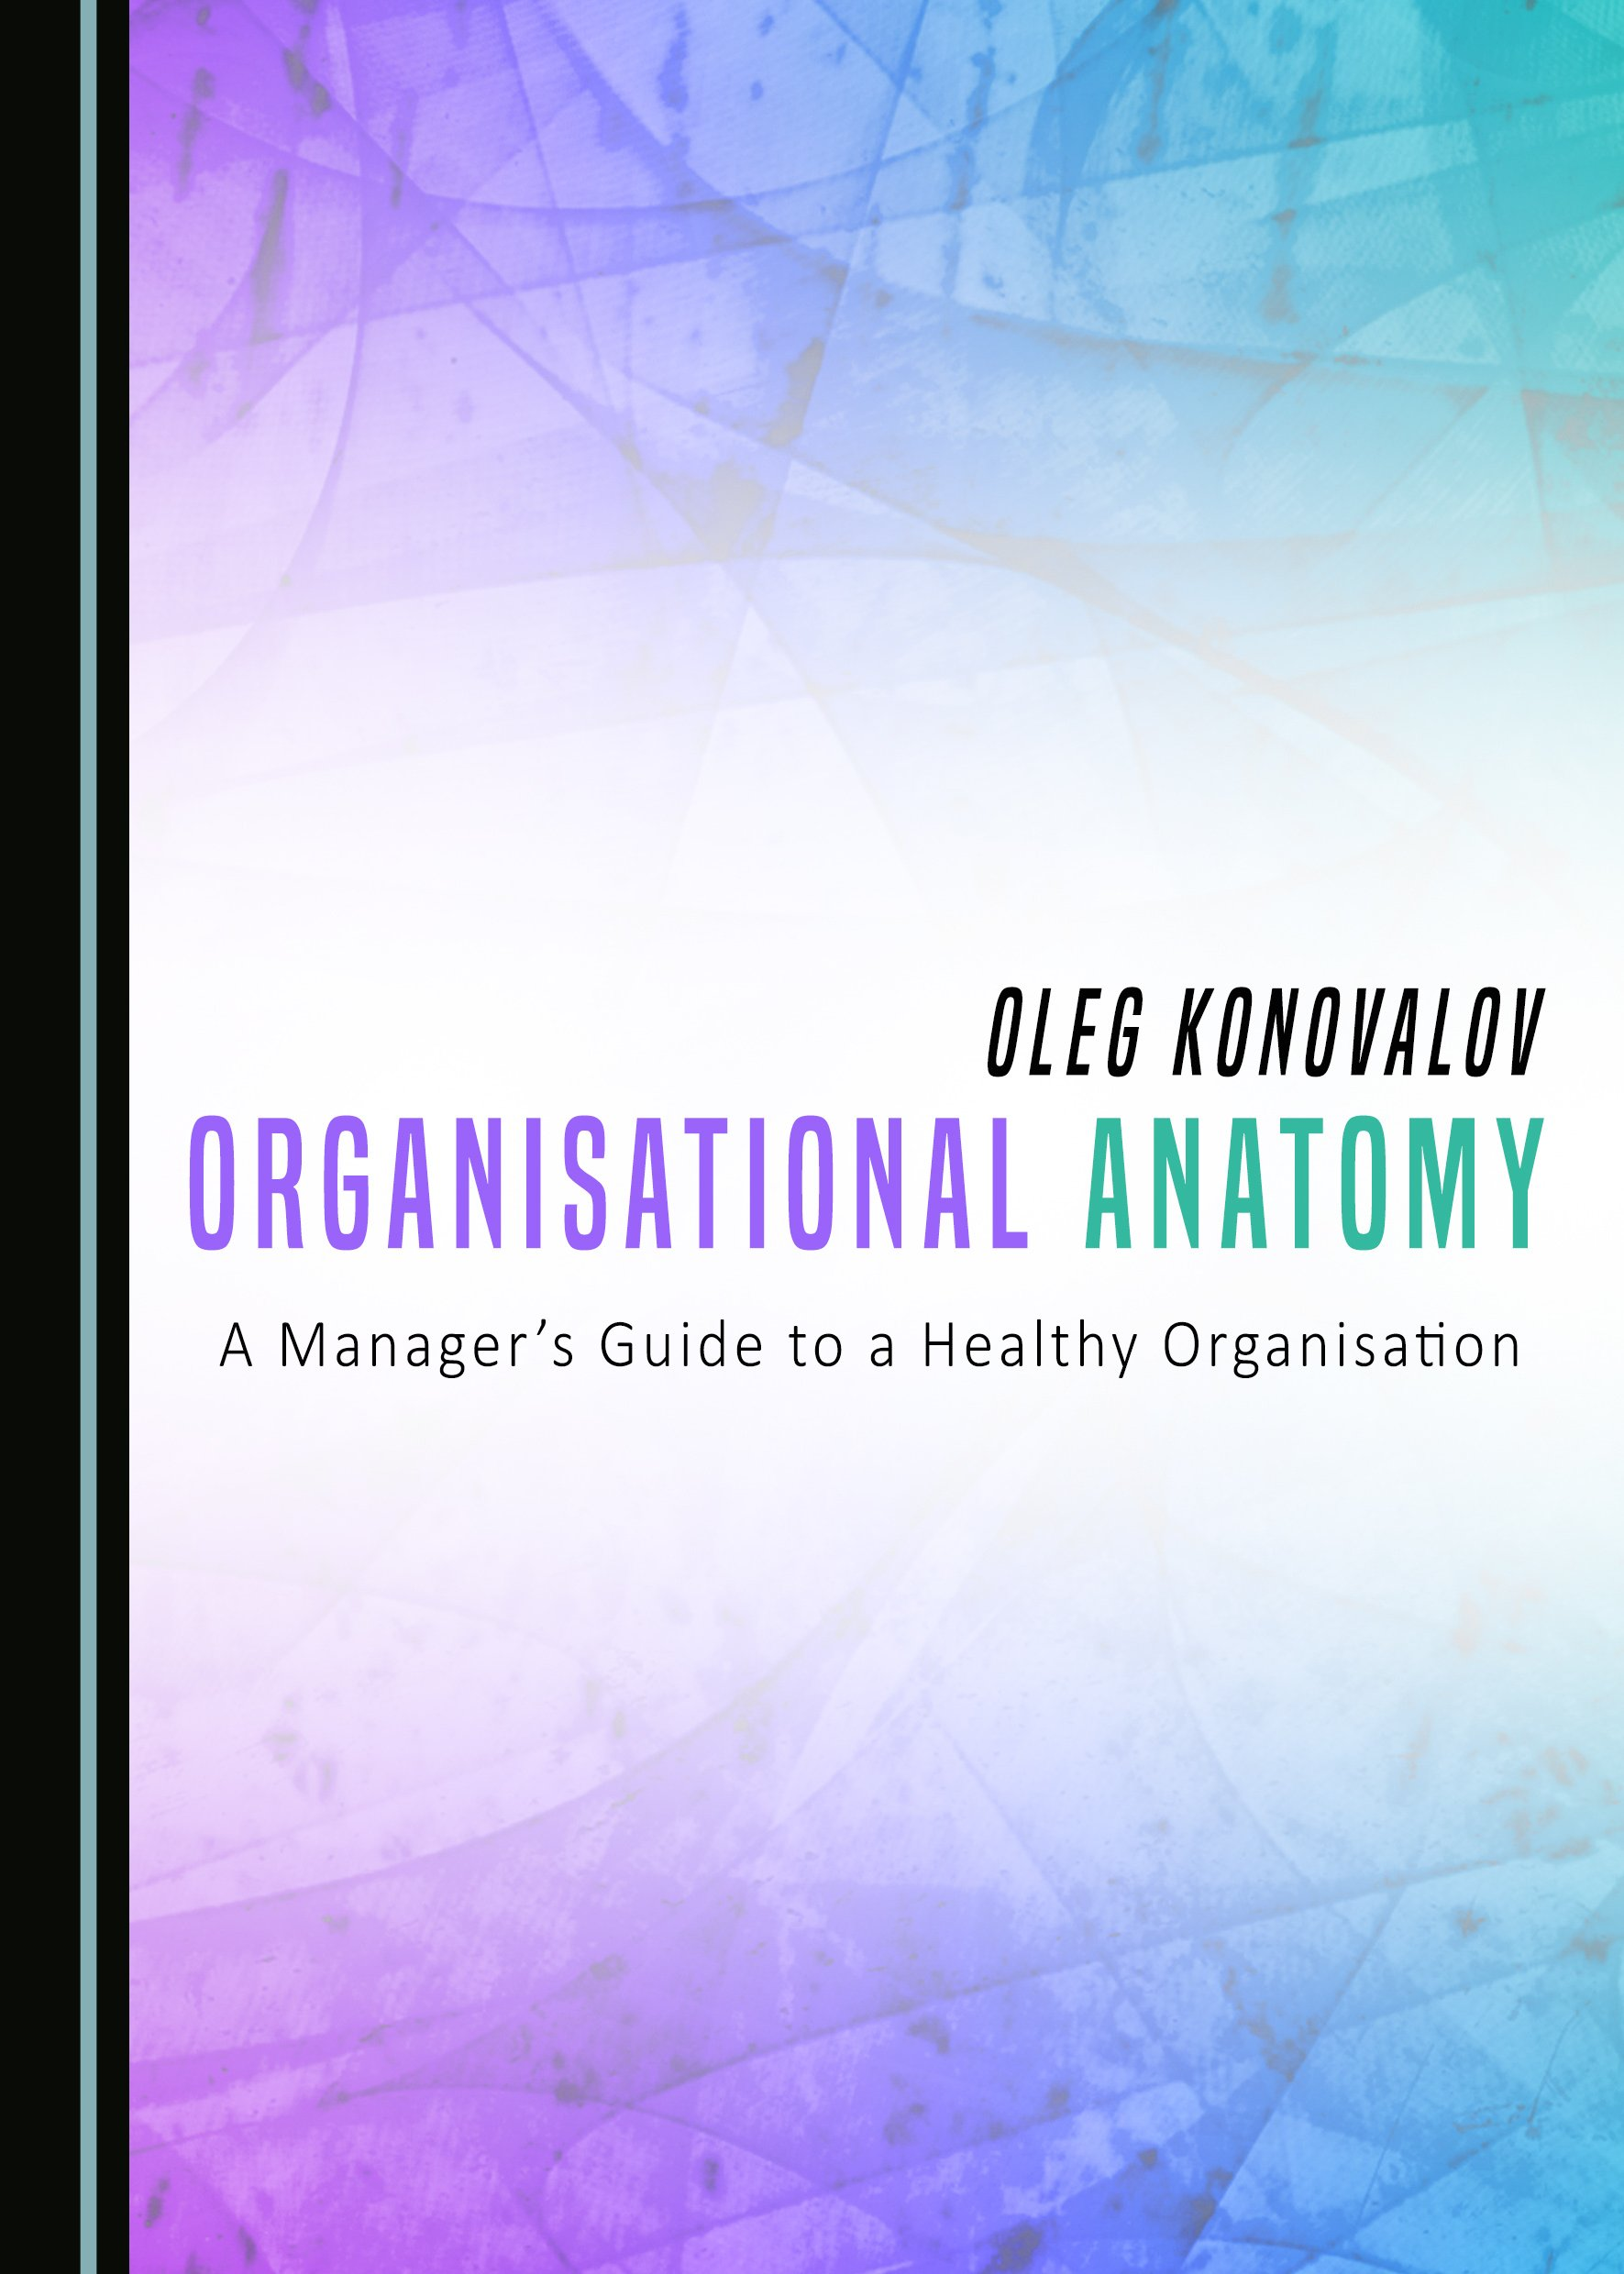 Organisational Anatomy: A Manager's Guide to a Healthy Organisation